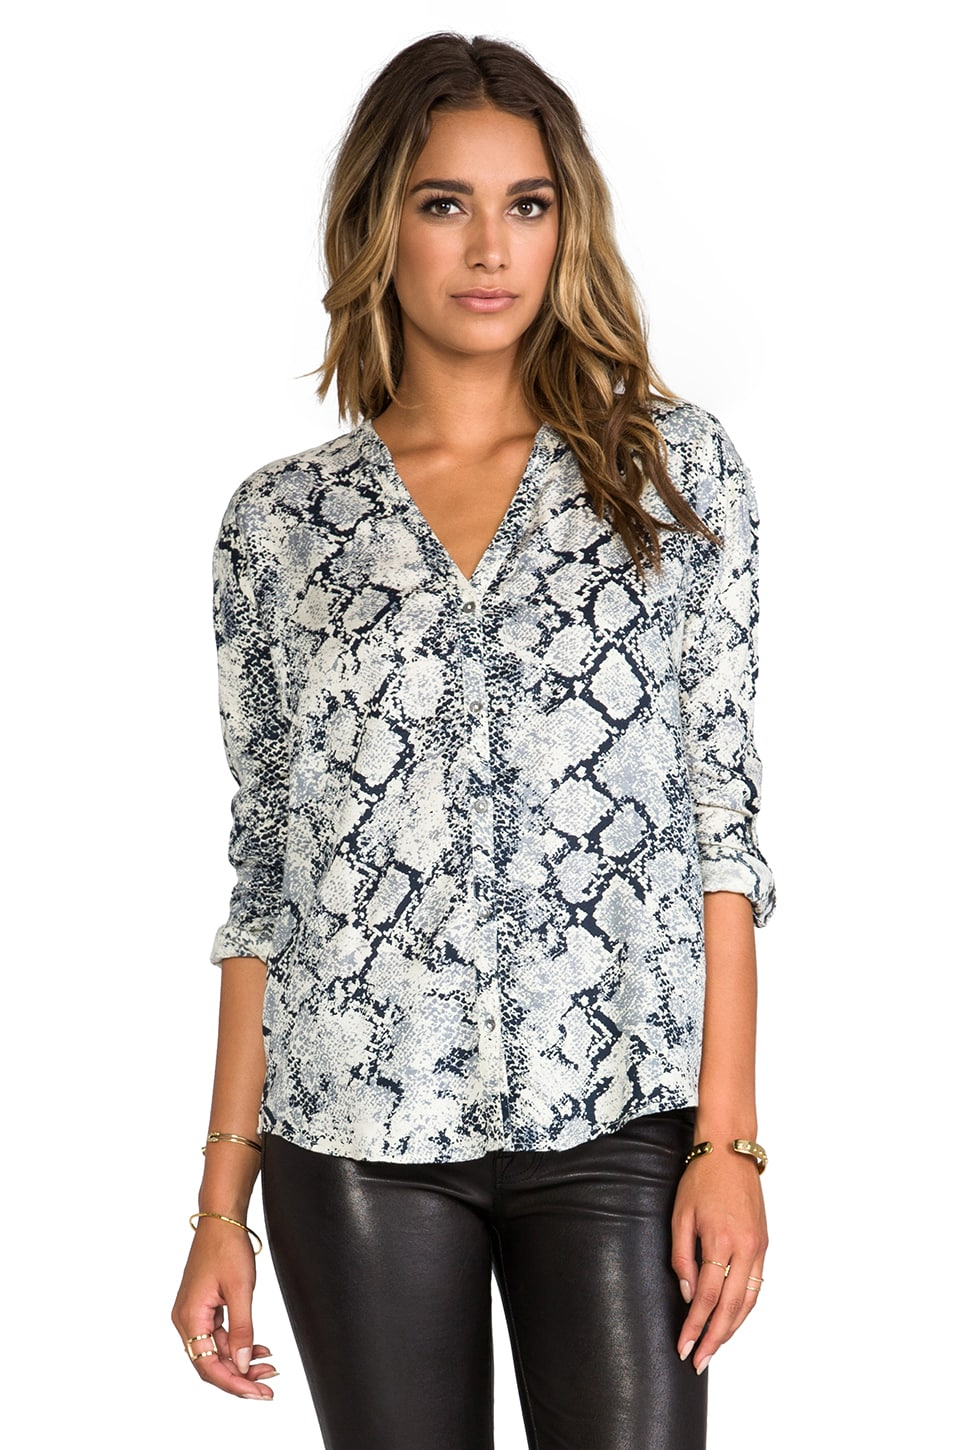 Soft Joie Dane Snake Print Blouse in Stonewash